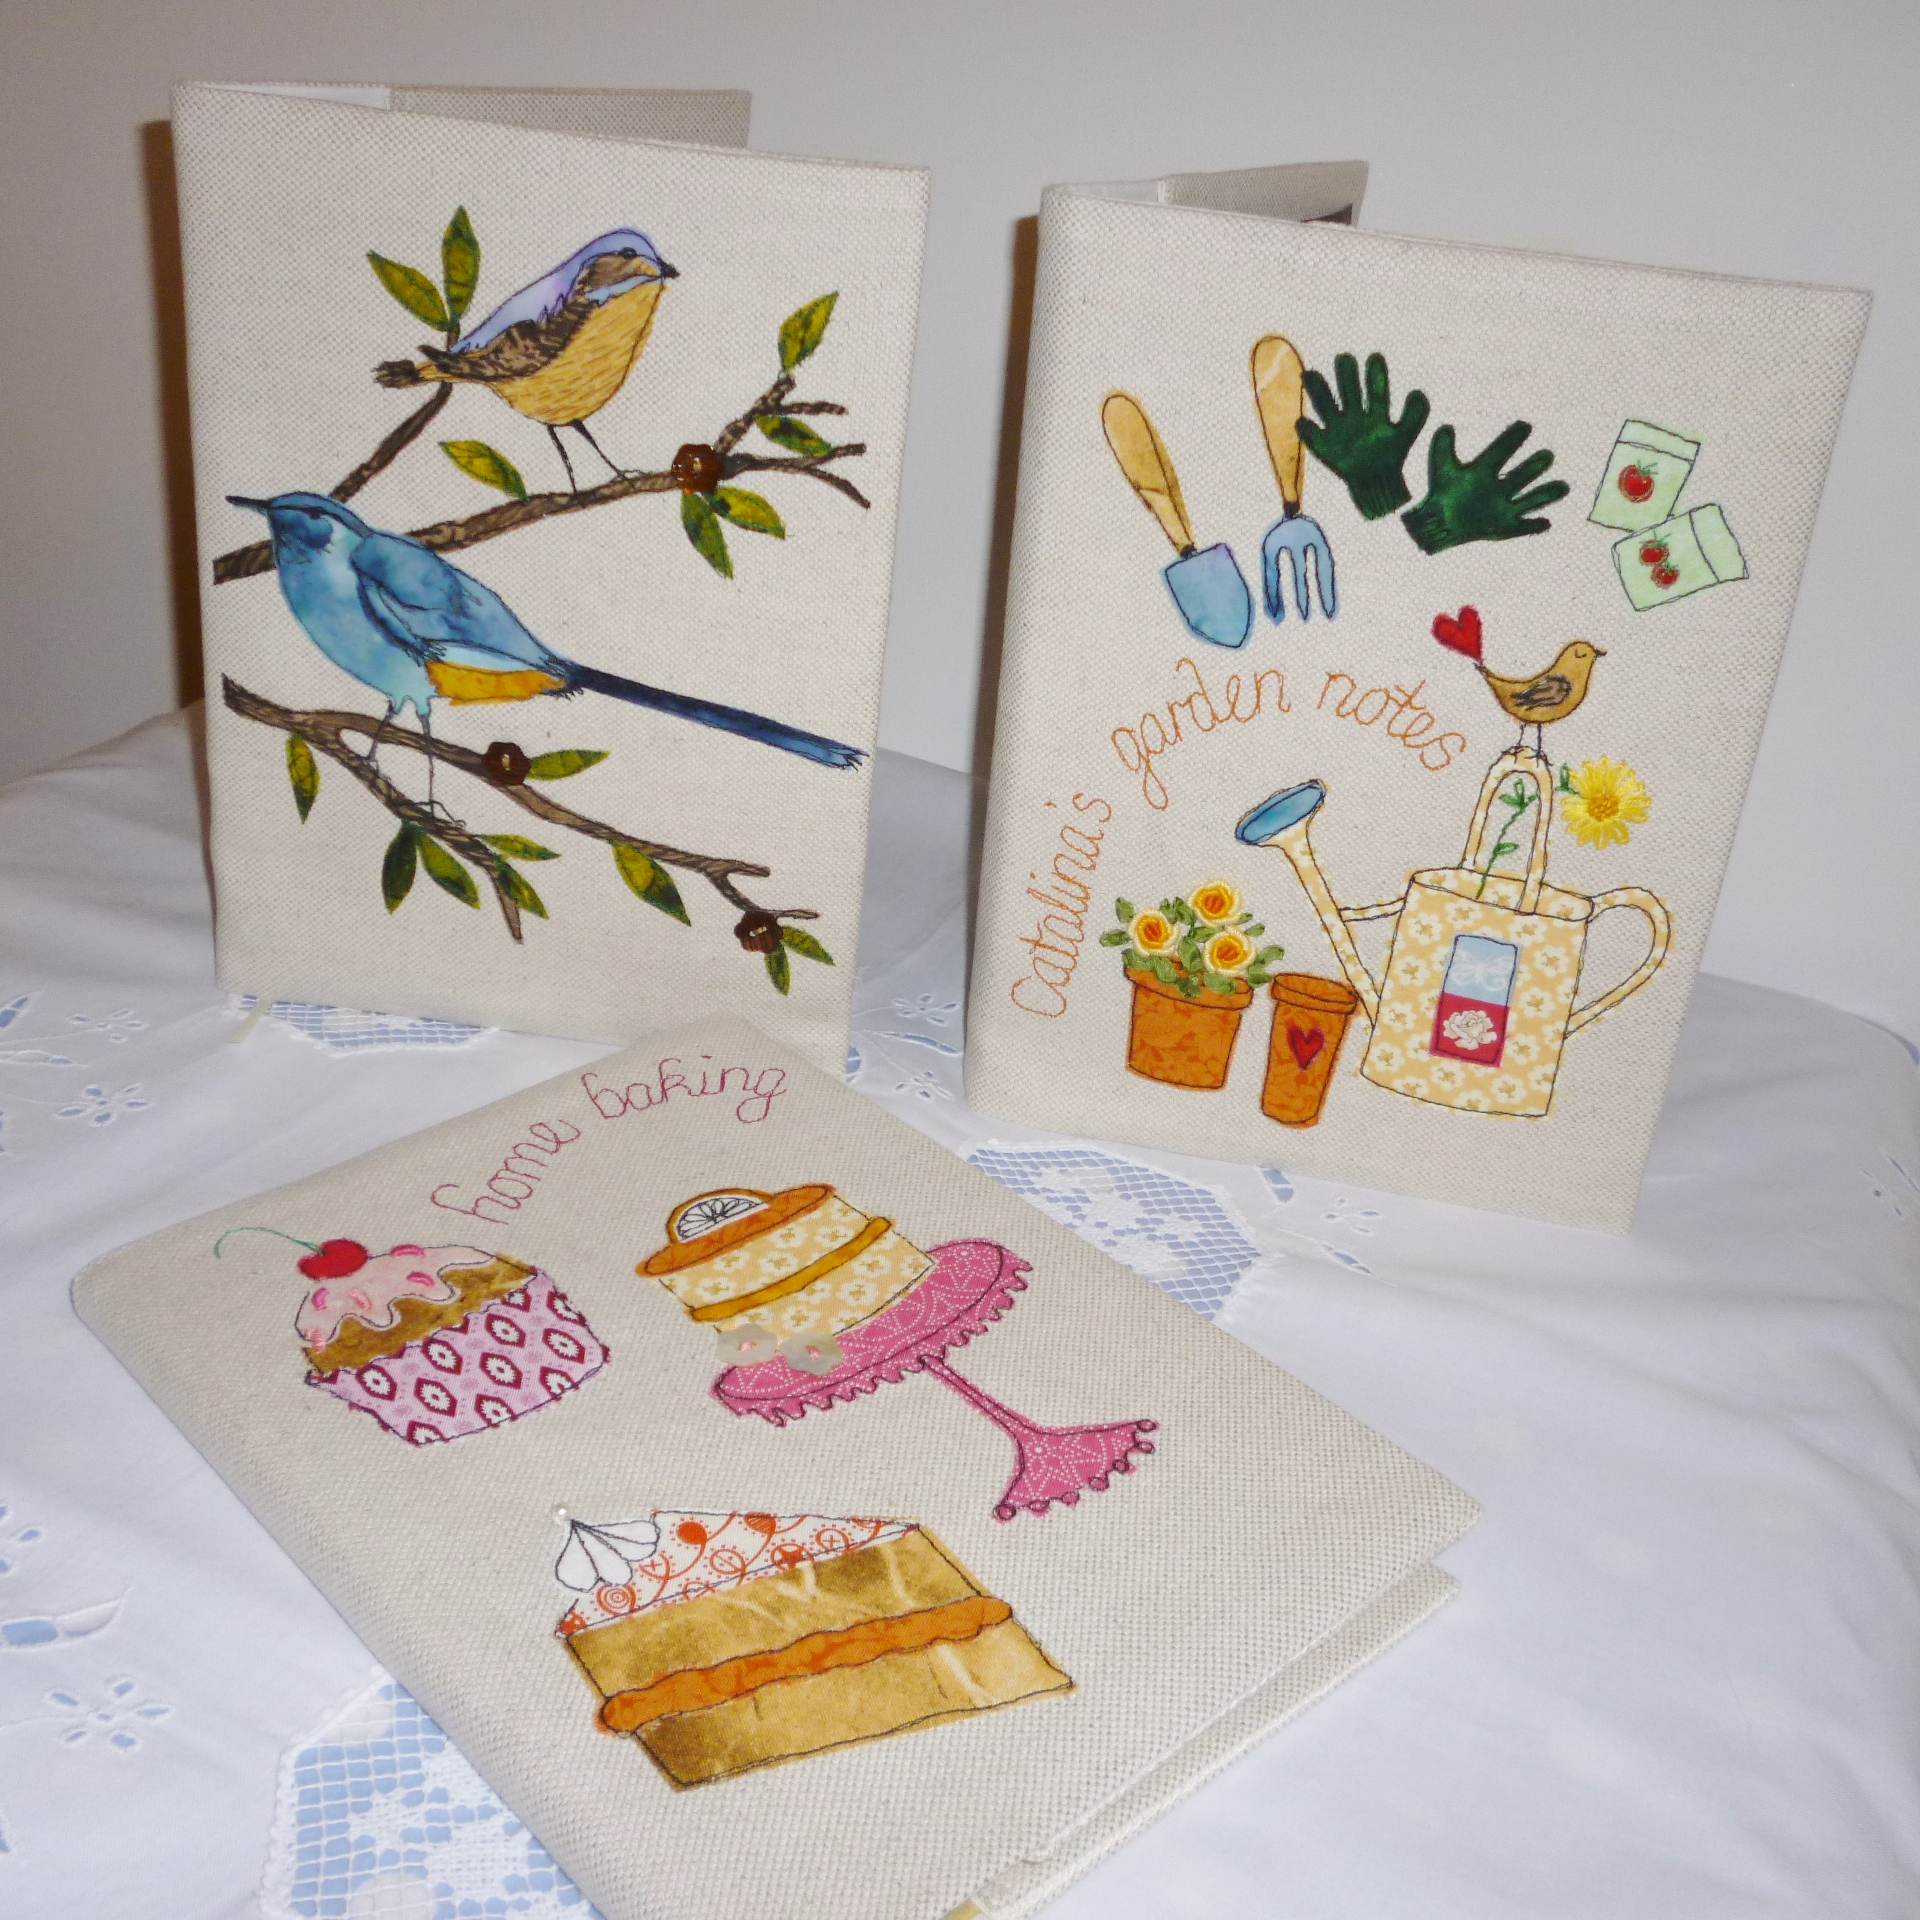 Appliqued fabric covered books